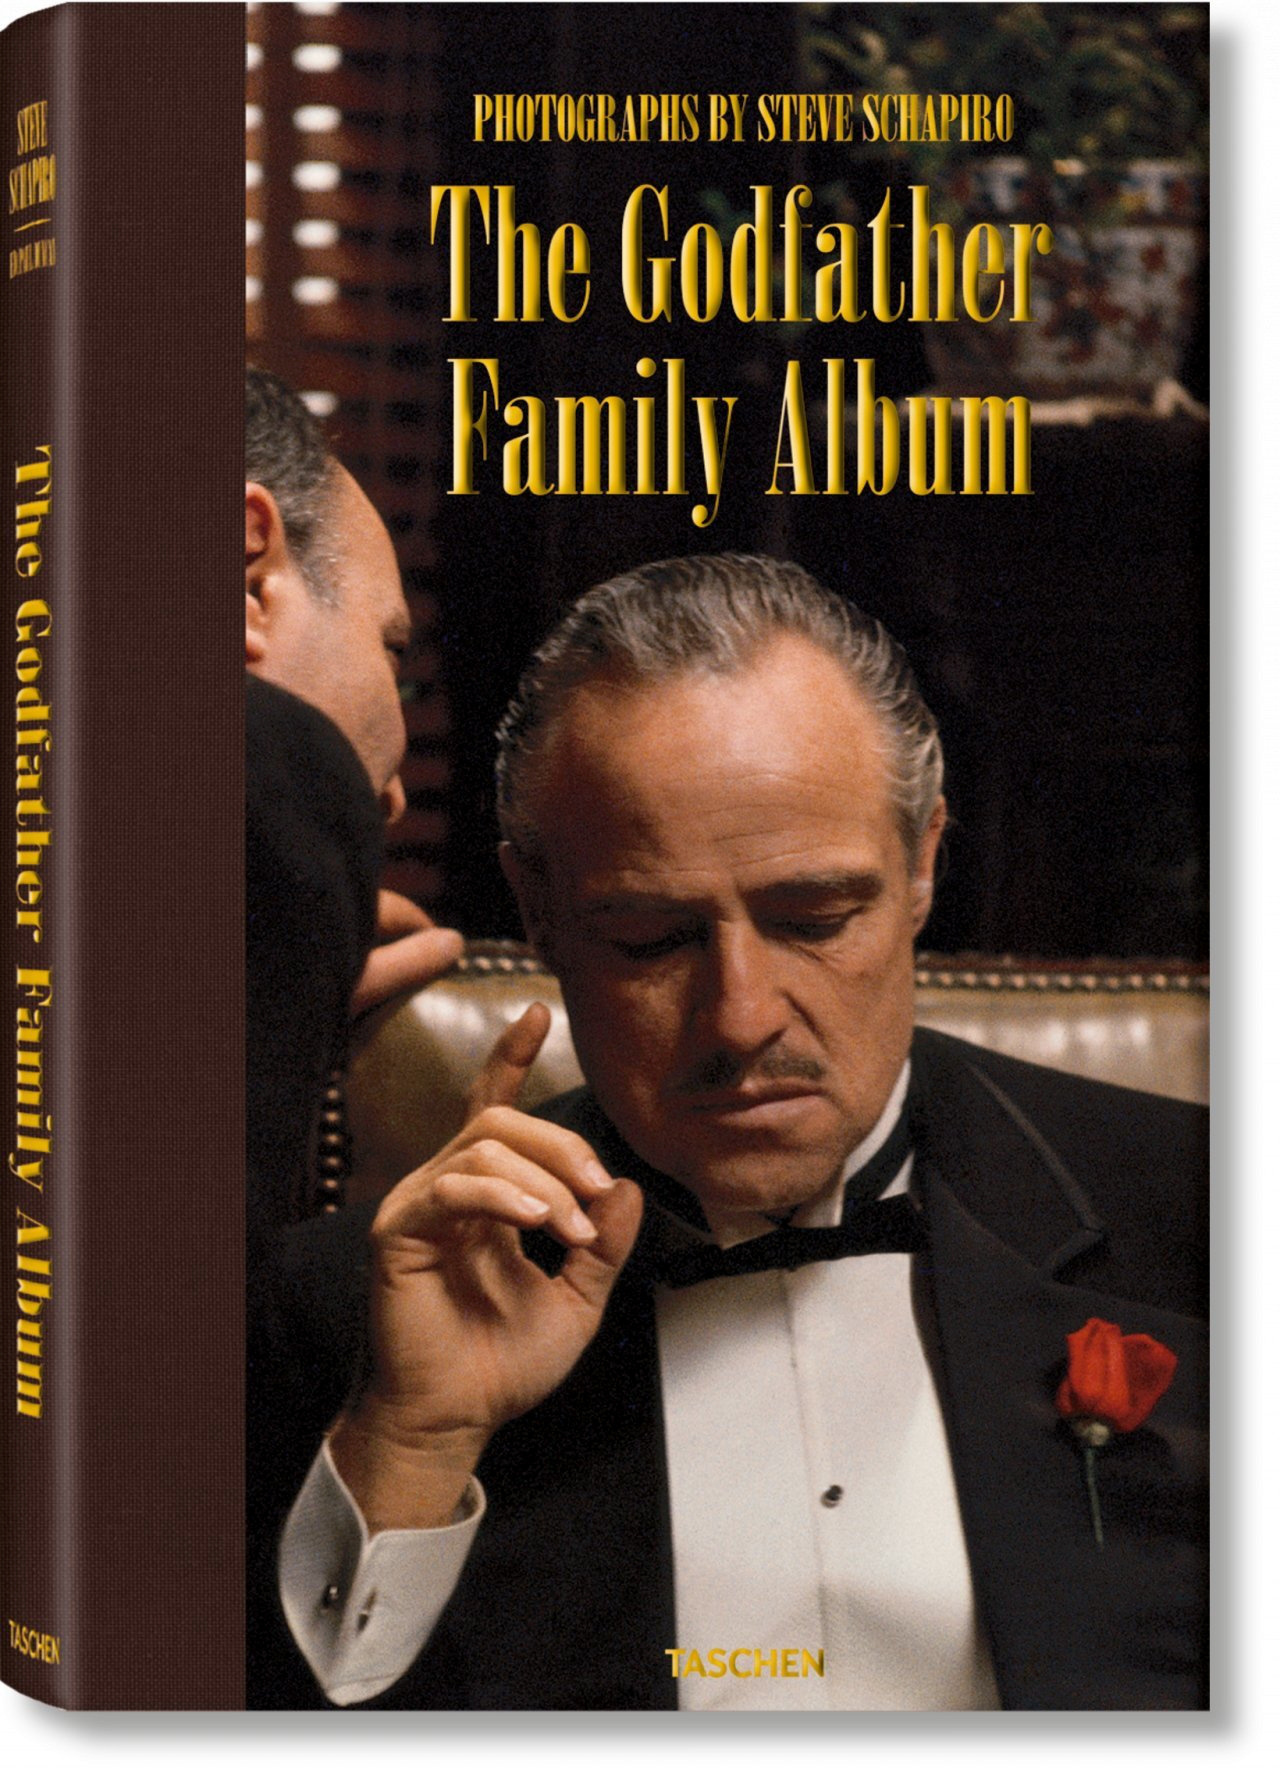 JU-GODFATHER FAMILY ALBUM TRADE ED